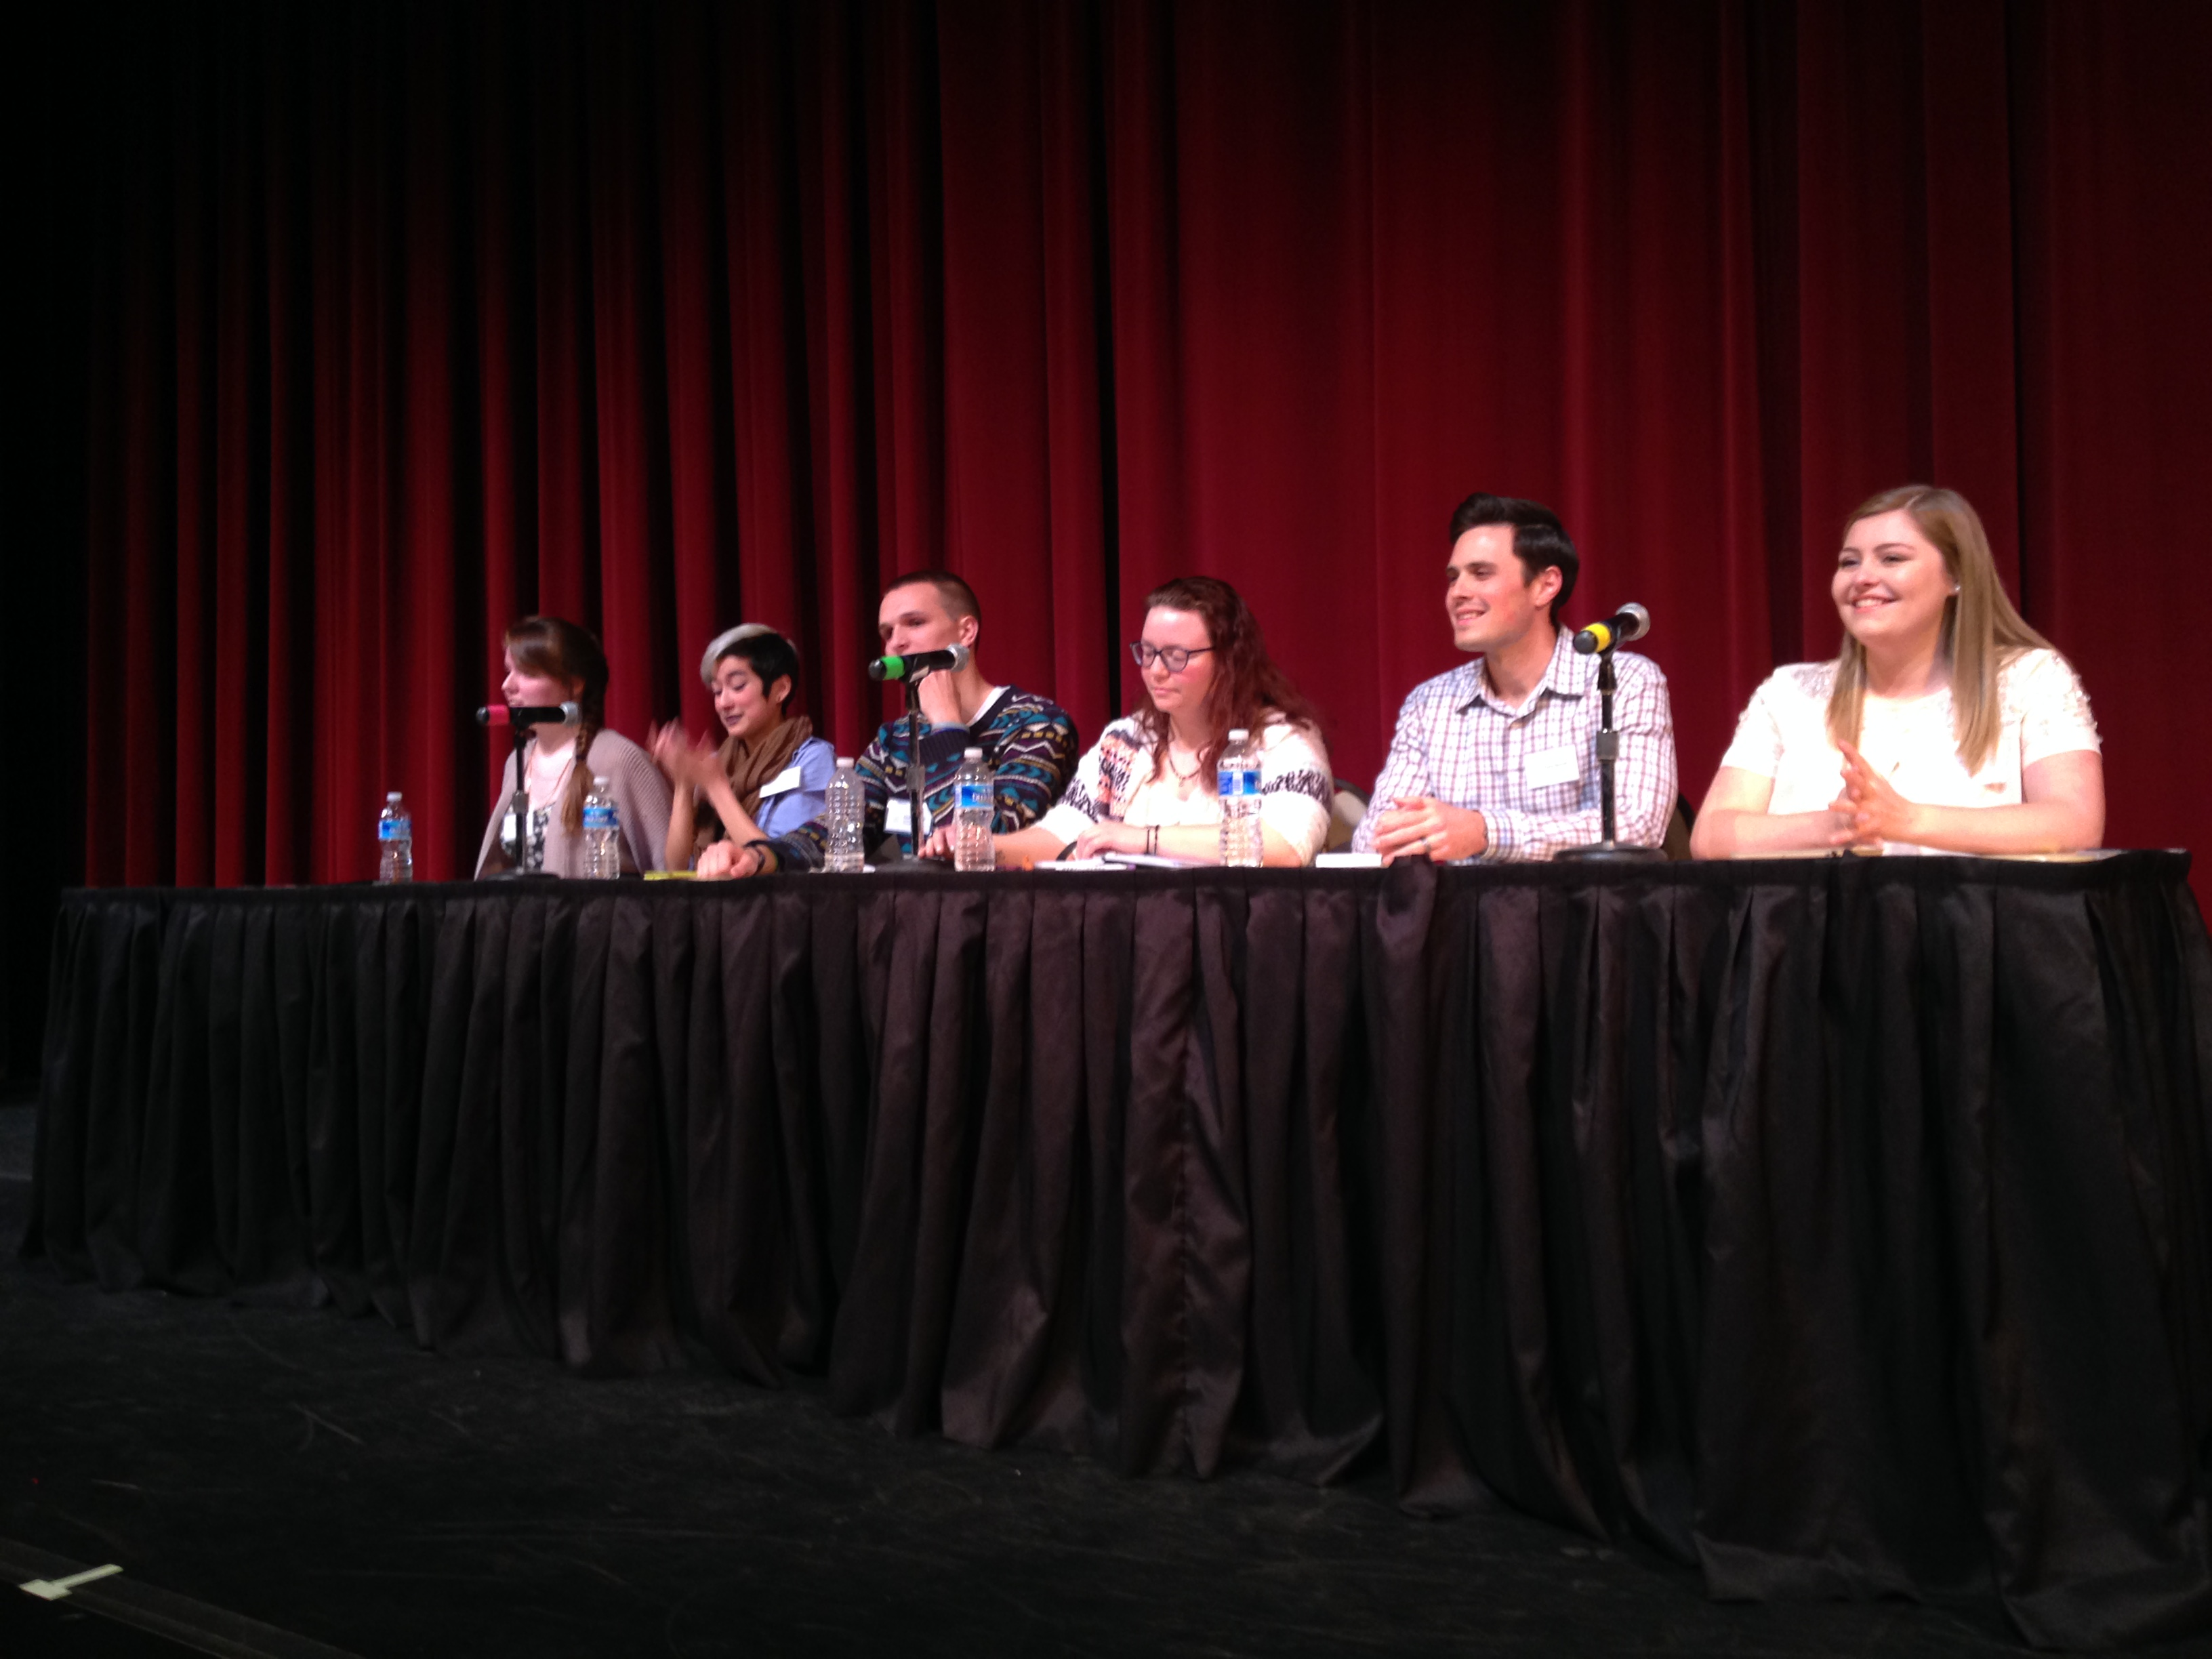 Teens open up about mental health, suicide